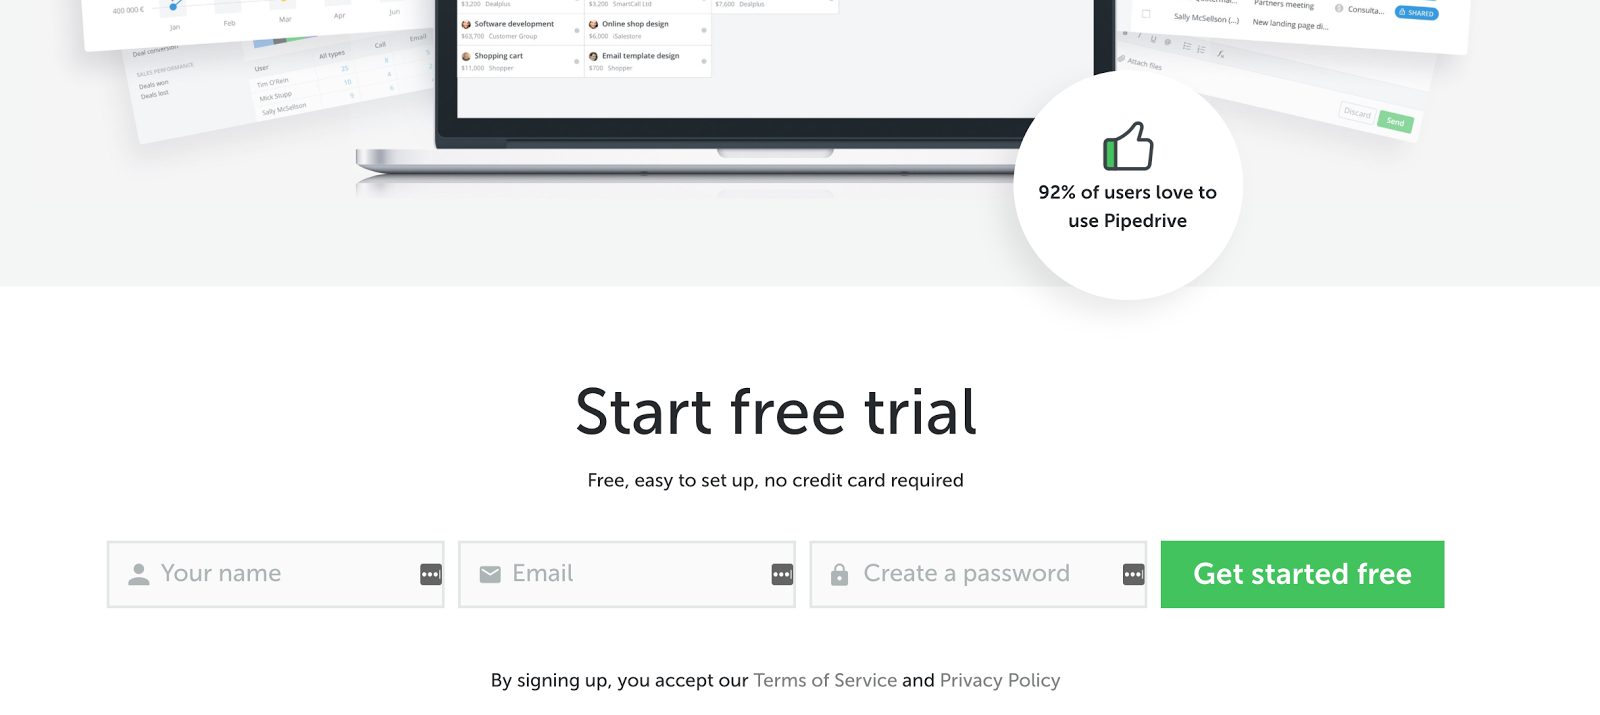 Pipedrive's landing page offers a free trial